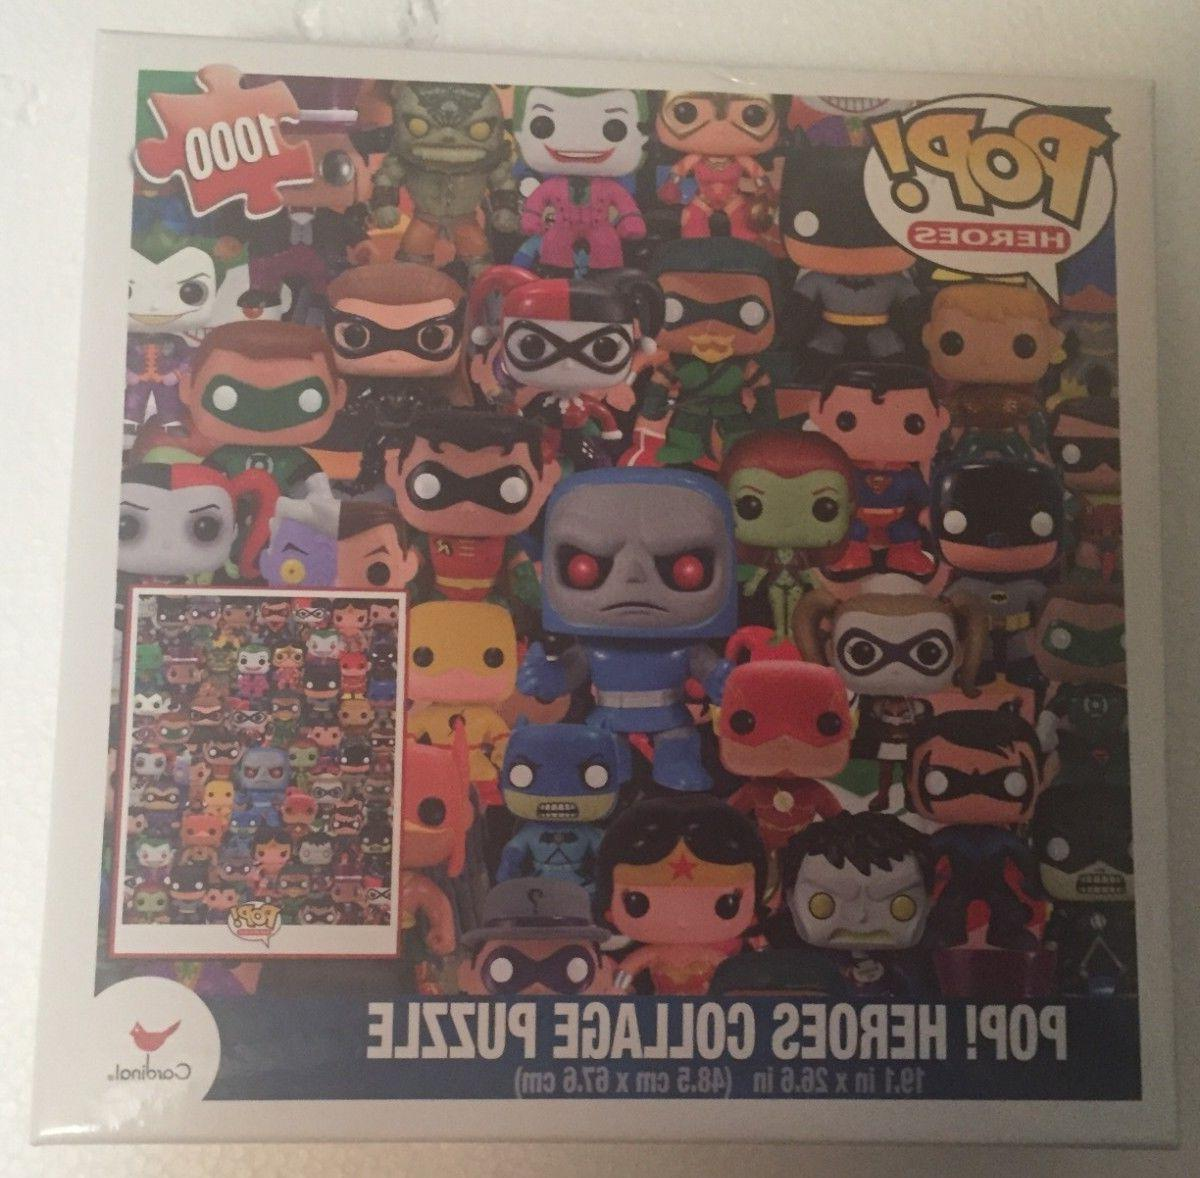 Funko Pop! DC Heroes Collage Puzzle - Brand New - 1,000 Piec